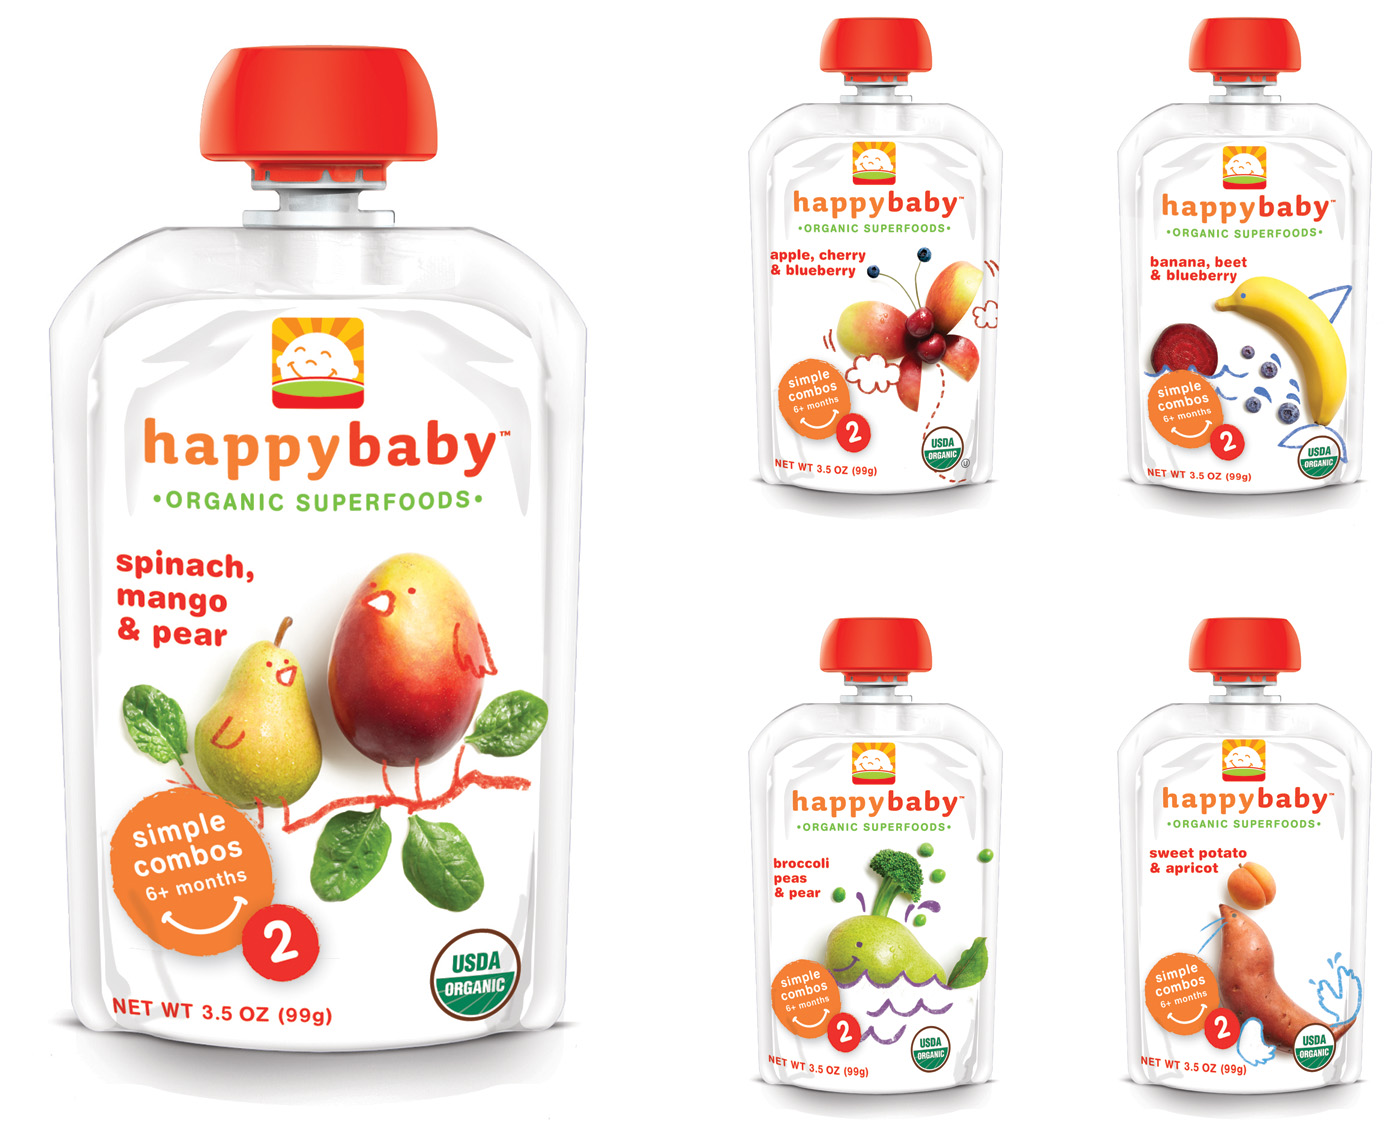 HappyBabySpread.jpg